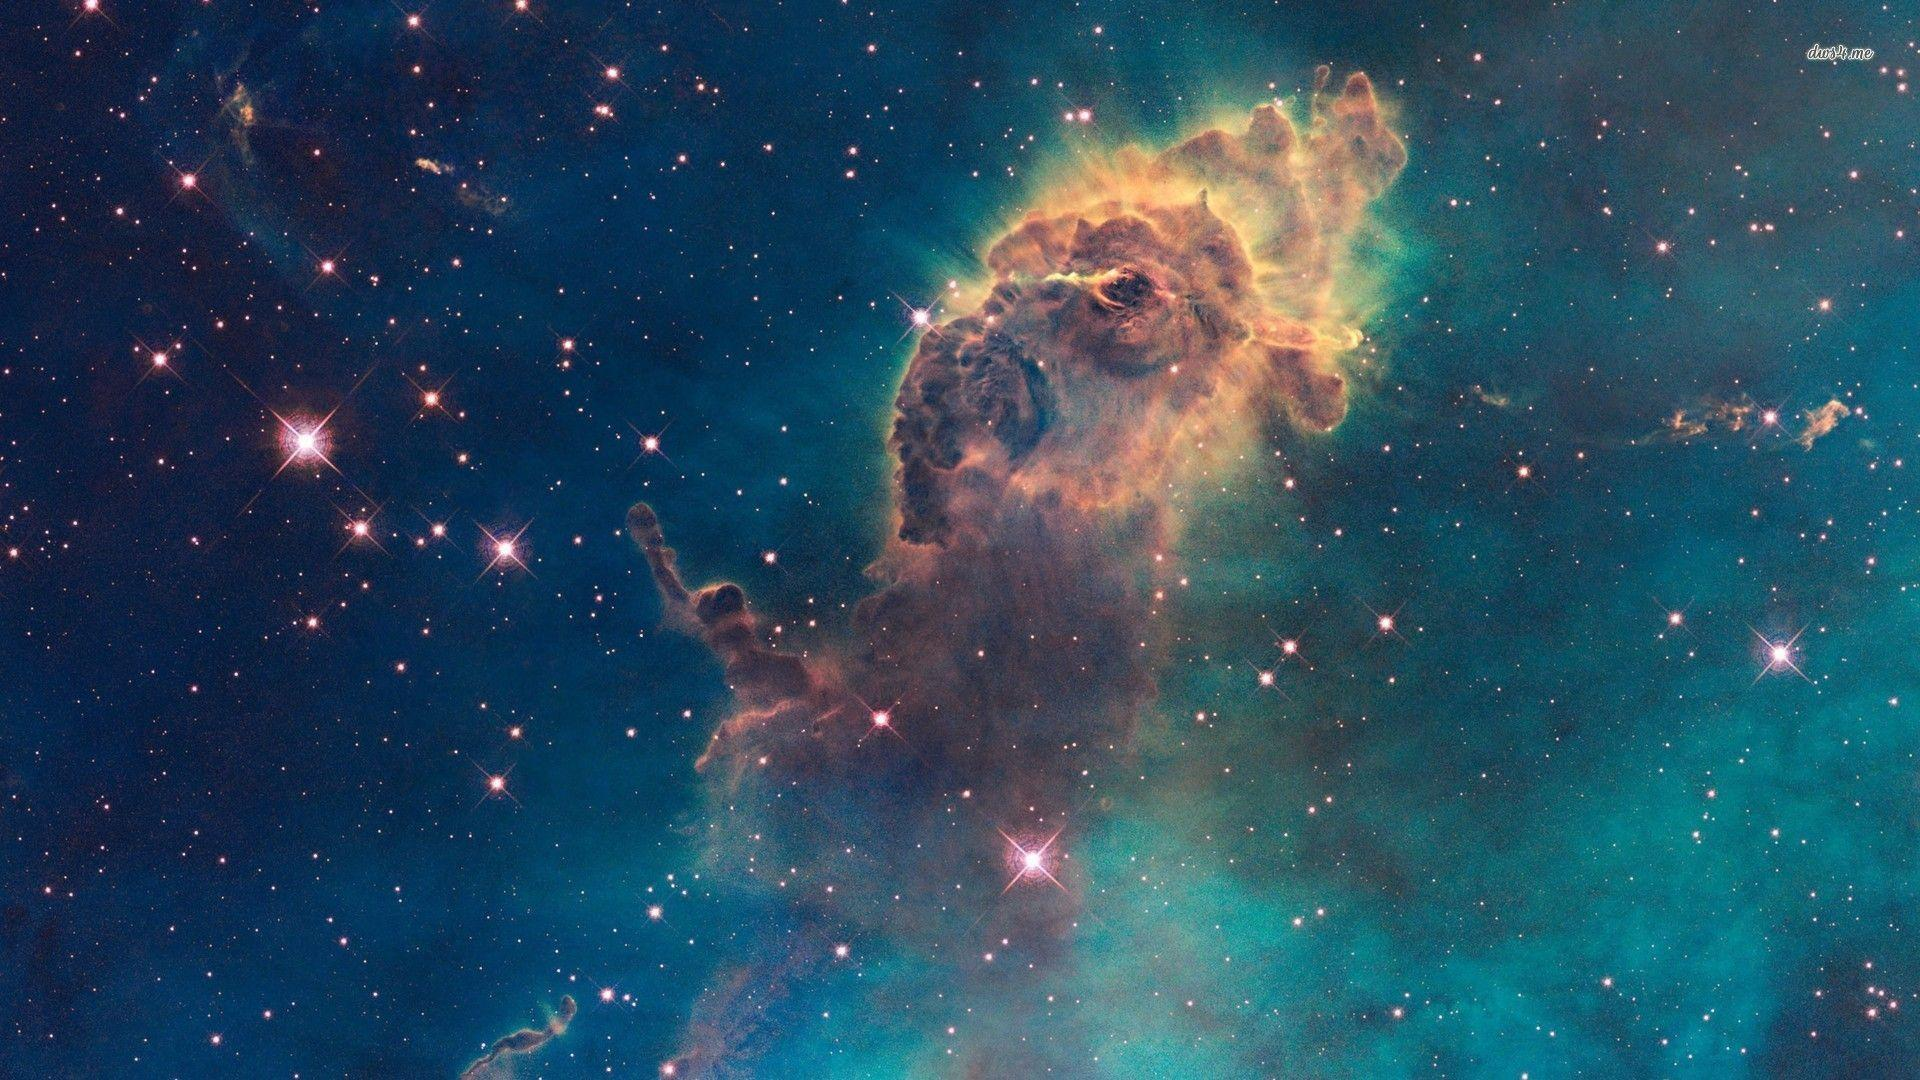 Carina Nebula Wallpapers - Wallpaper Cave